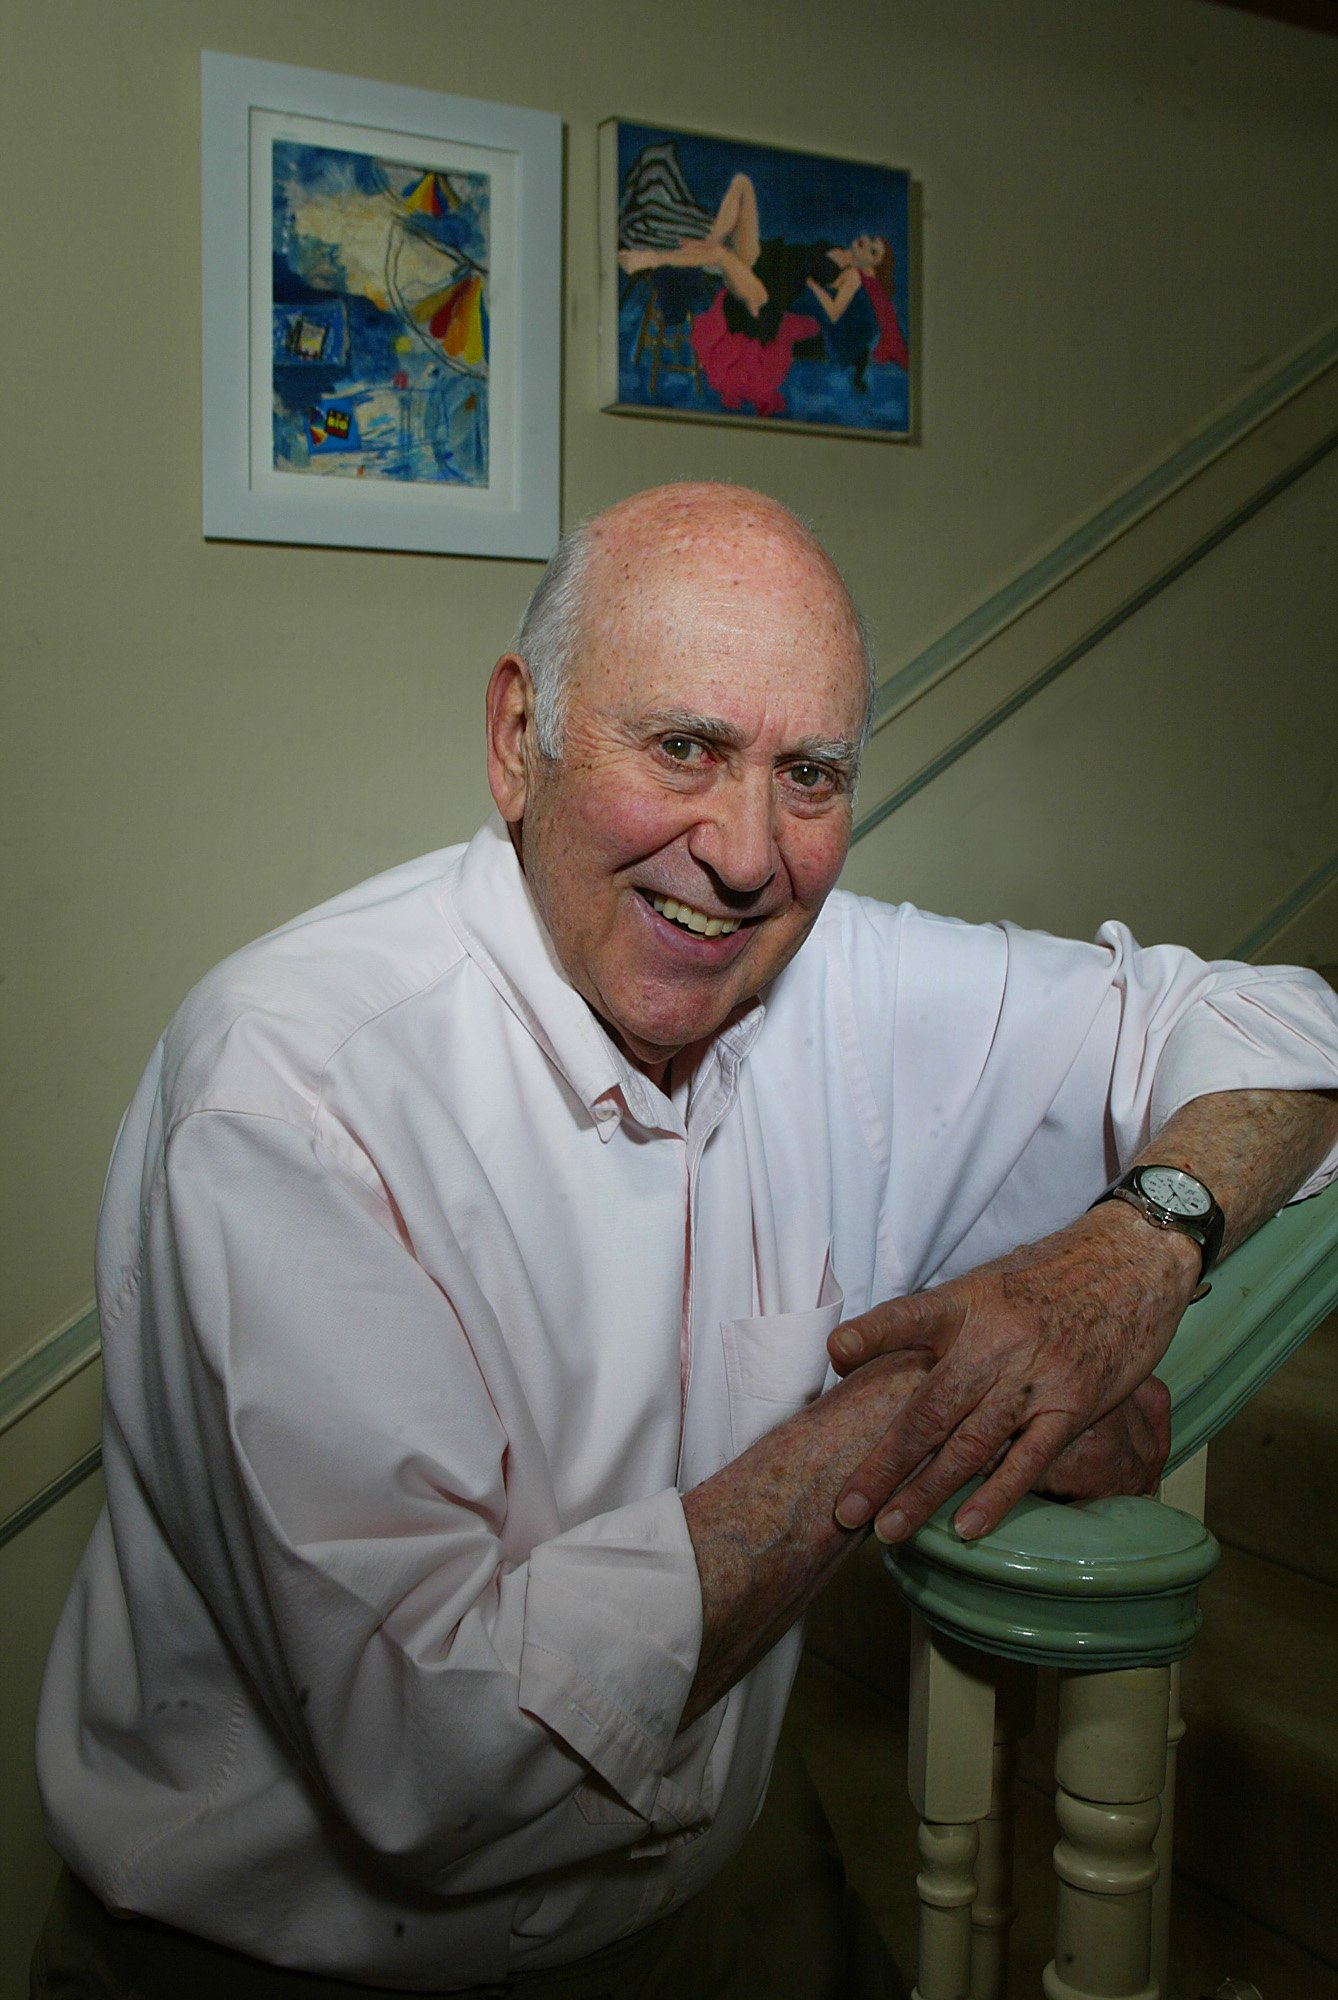 Carl Reiner at his Beverly Hills home, April 25, 2003. | Source: Getty Images.